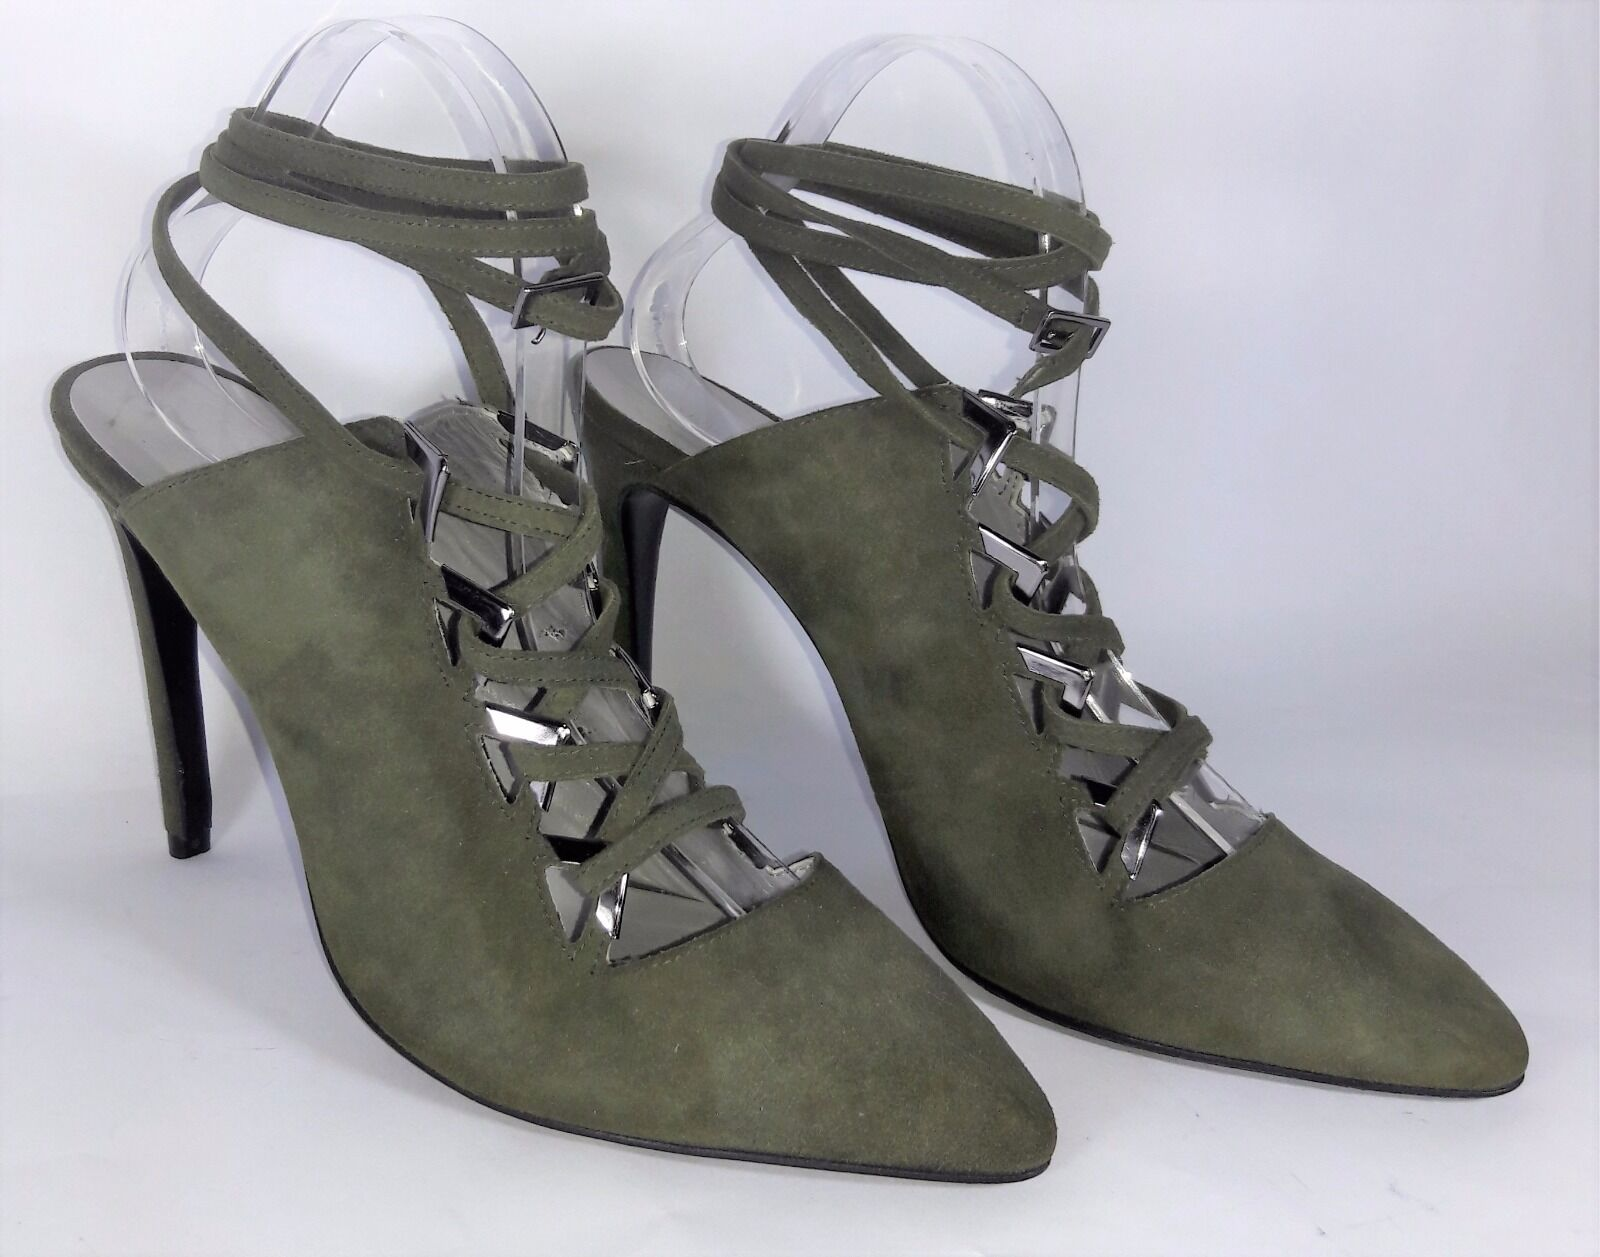 PREEN by THORNTON BREGAZZI 'Palmer' Sz 40 Olive Suede Lace-up Stiletto Mules